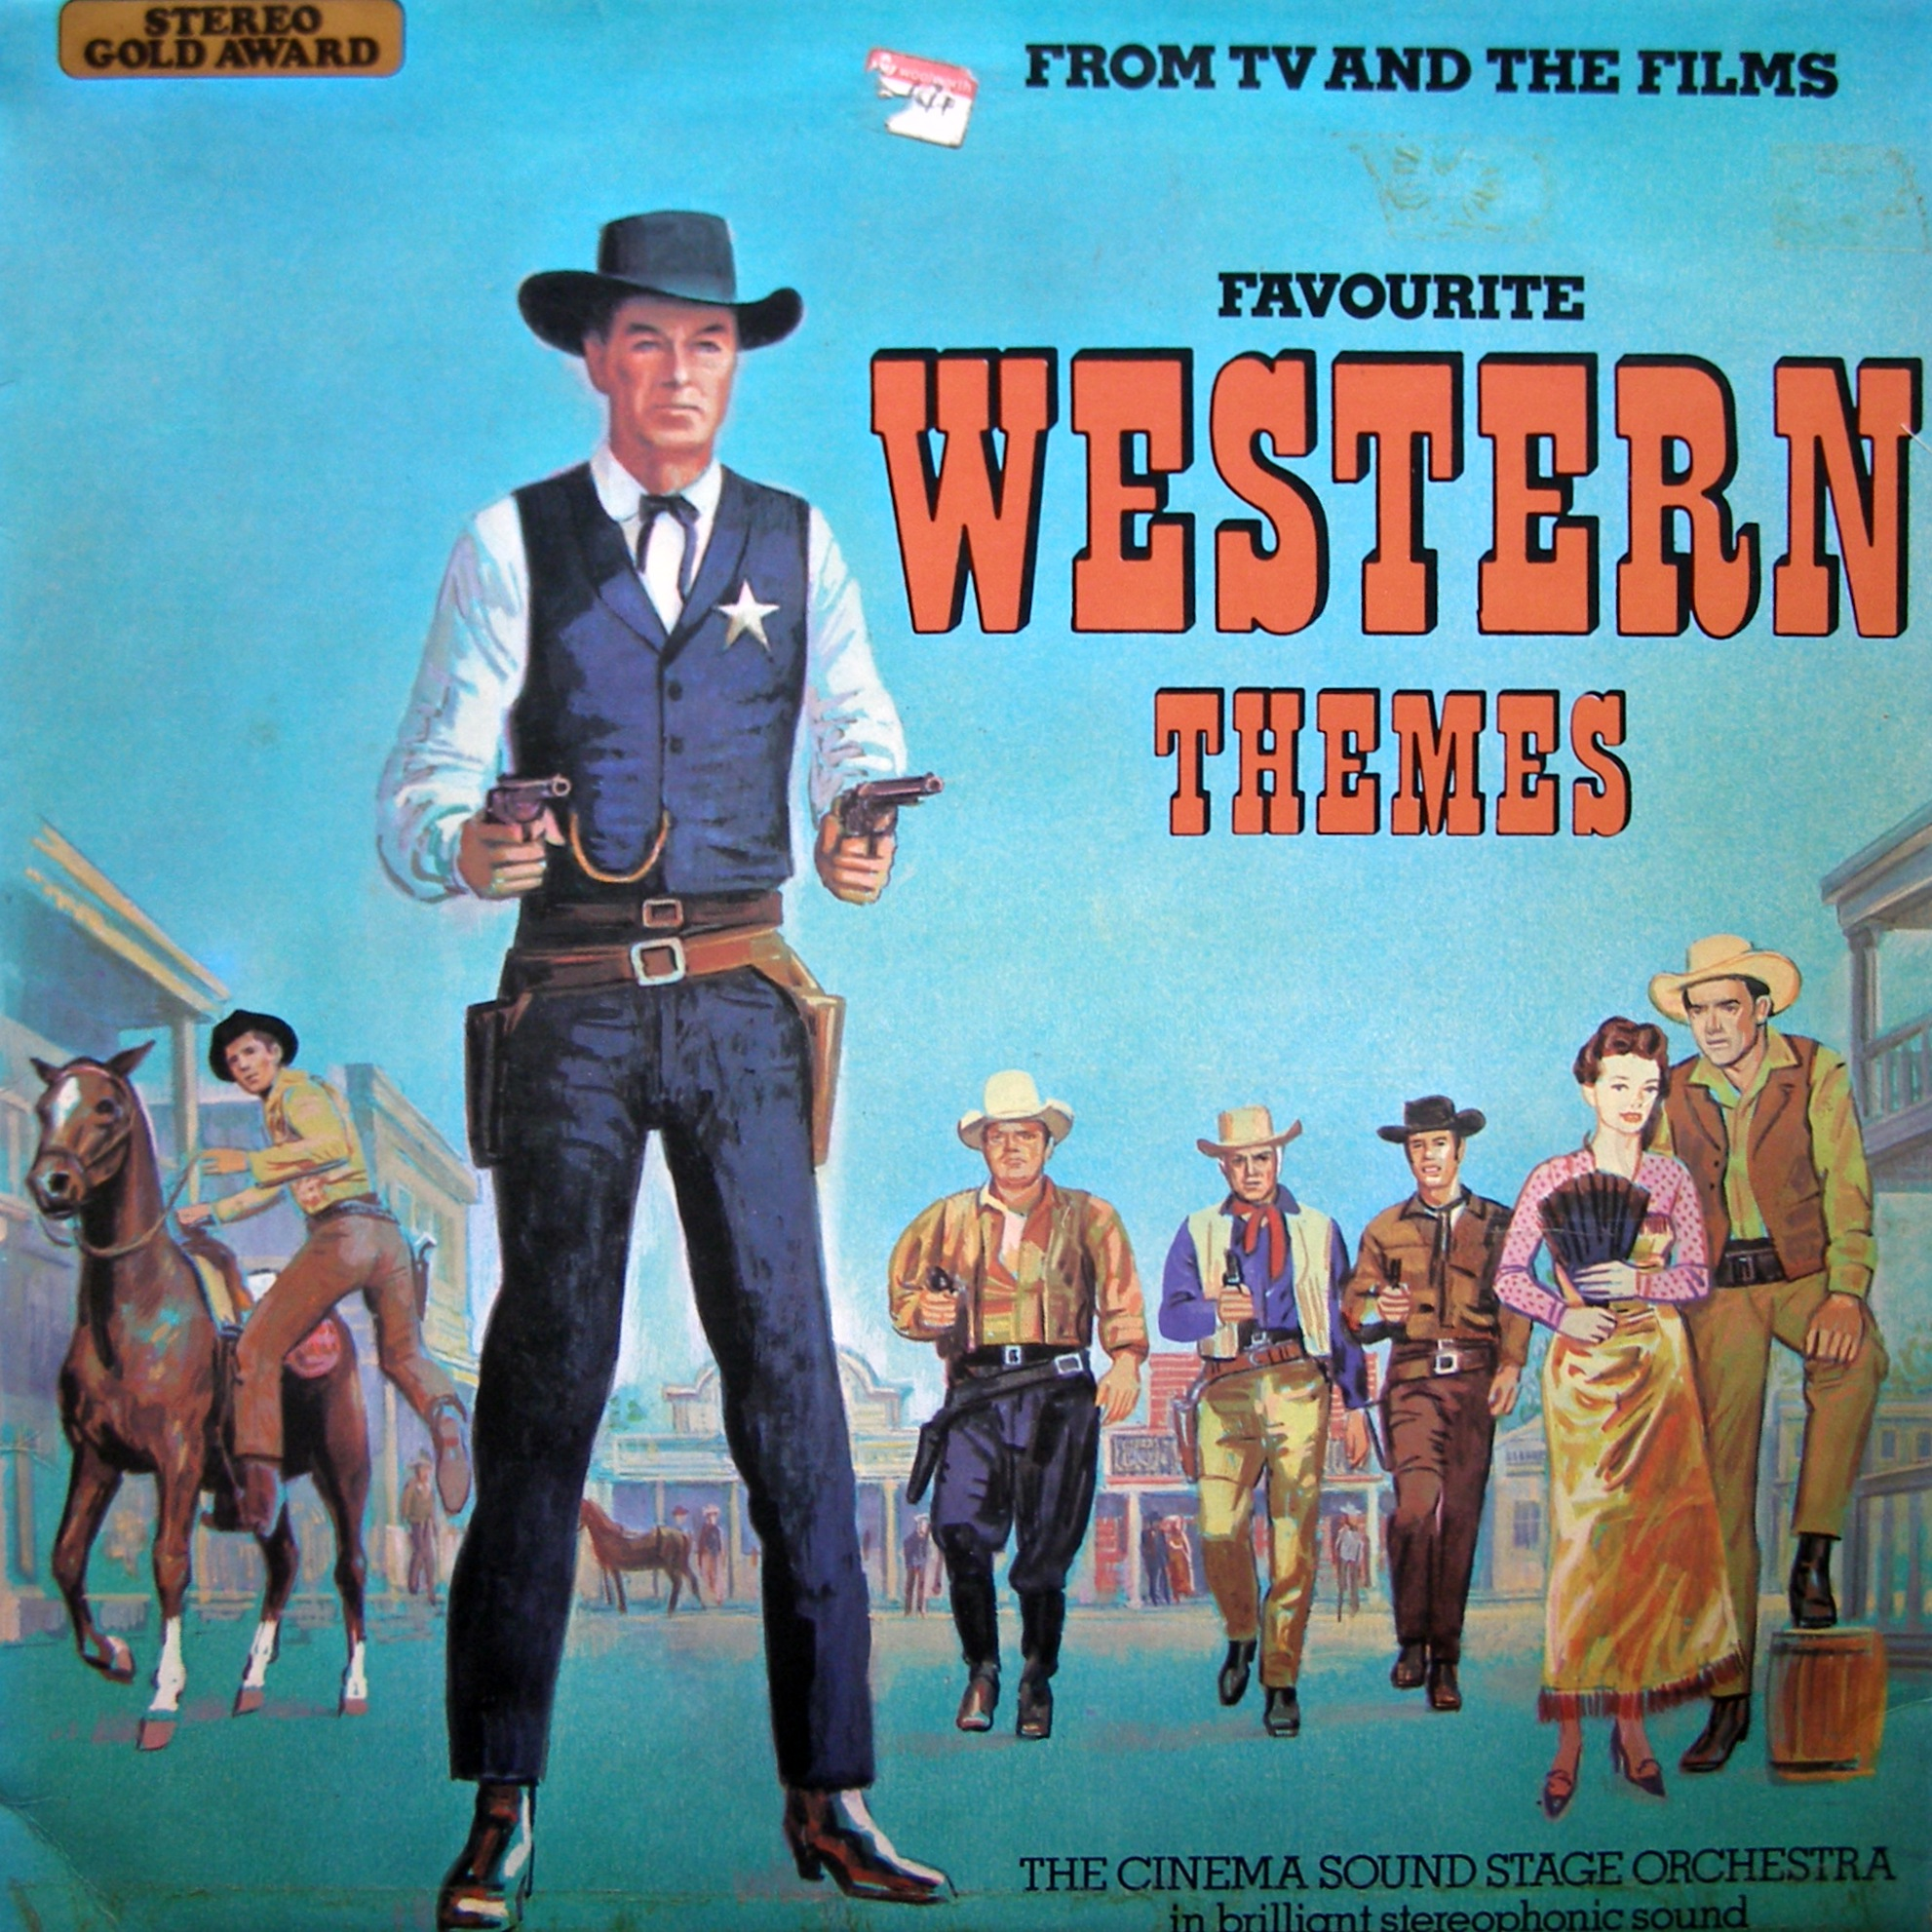 LP The Cinema Sound Stage Orchestra ‎– Favourite TV And Film Western Themes